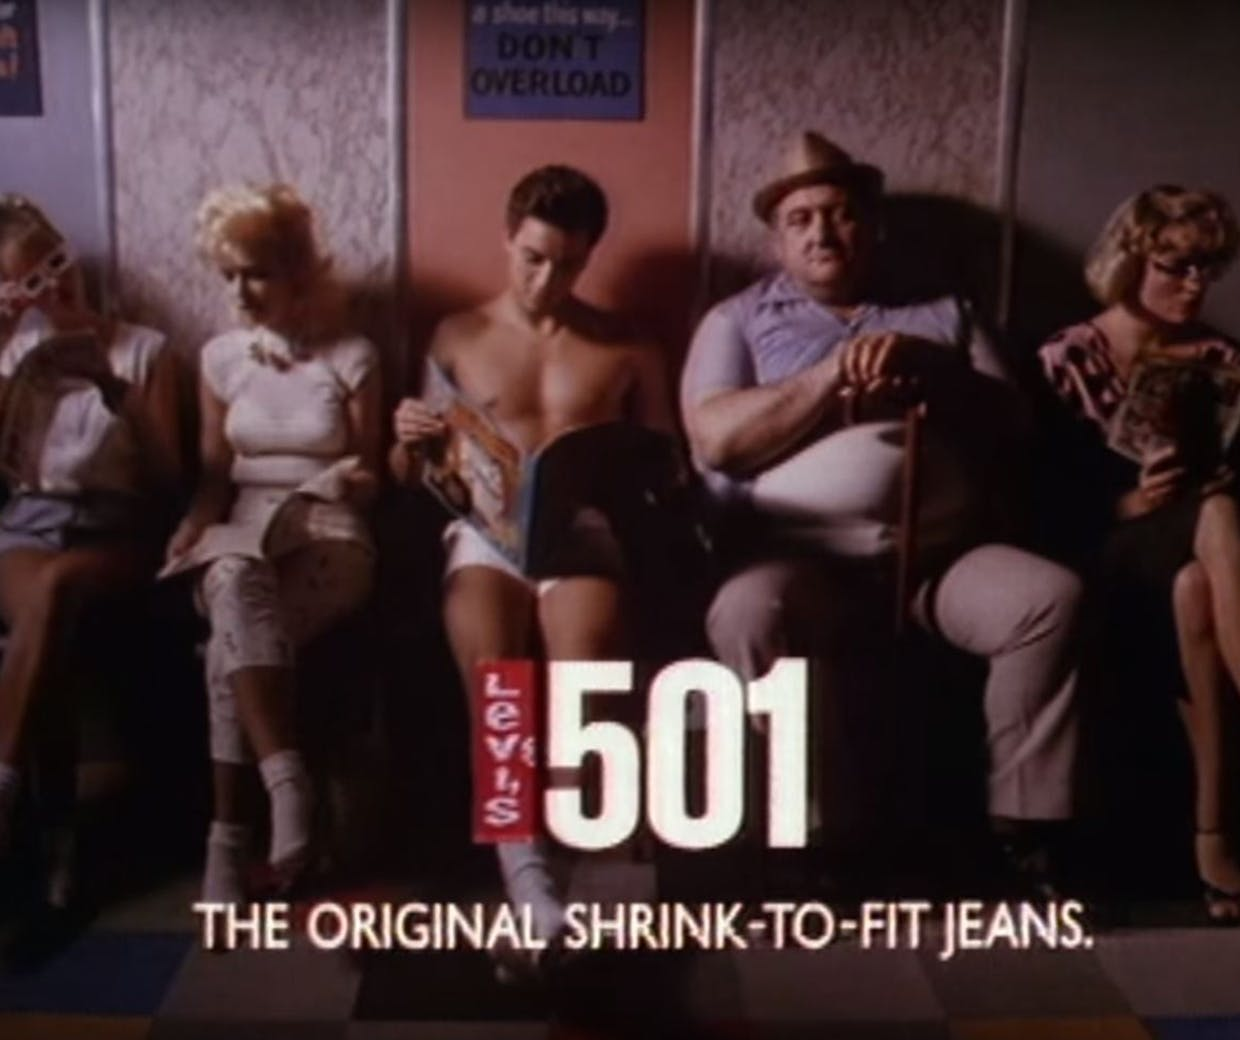 How Levi's 'Laundrette' ad led to an 800% sales boost